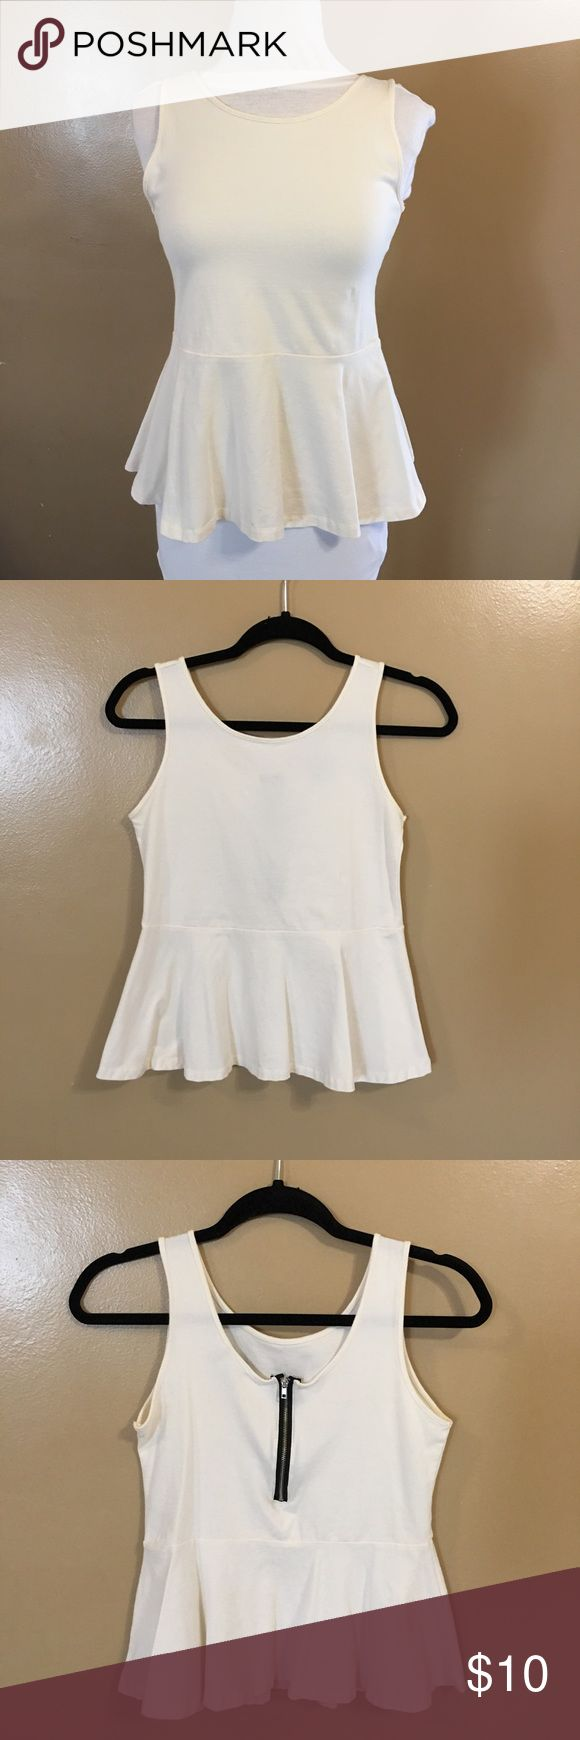 White Plum Top Cute White Plum Top w/Zipper detail on back! Size:Medium *PreLoved & in great shape! Tops Blouses